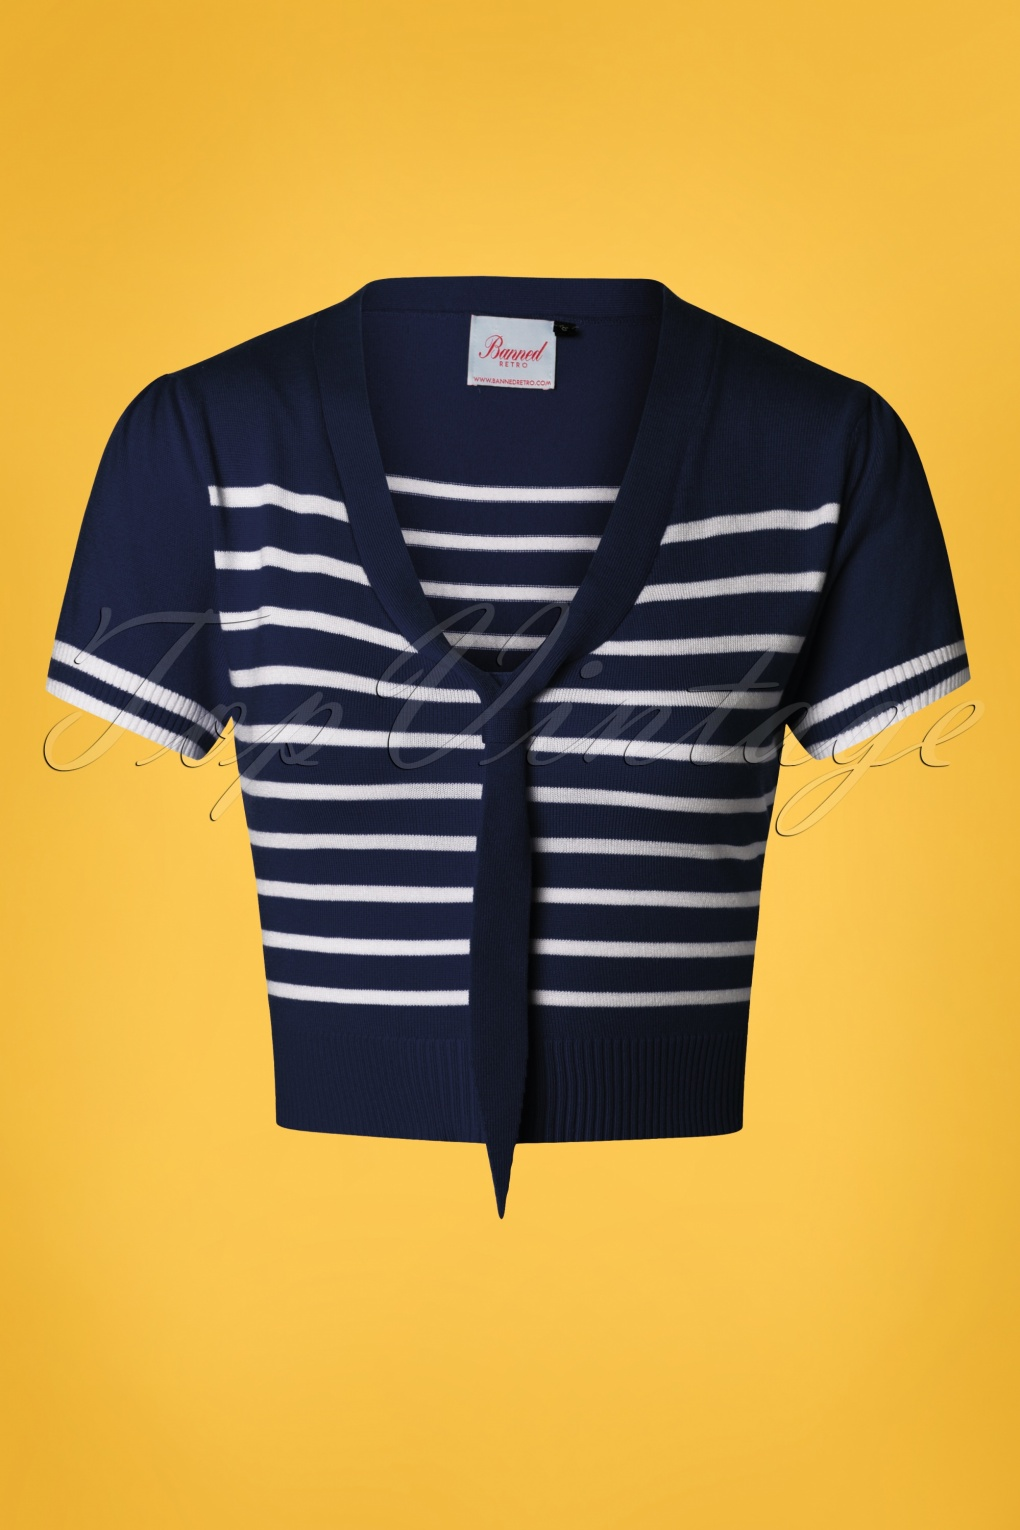 1940s Blouses, Shirts and Tops Fashion History 50s Sailor Stripe Tie Top in Navy £32.86 AT vintagedancer.com